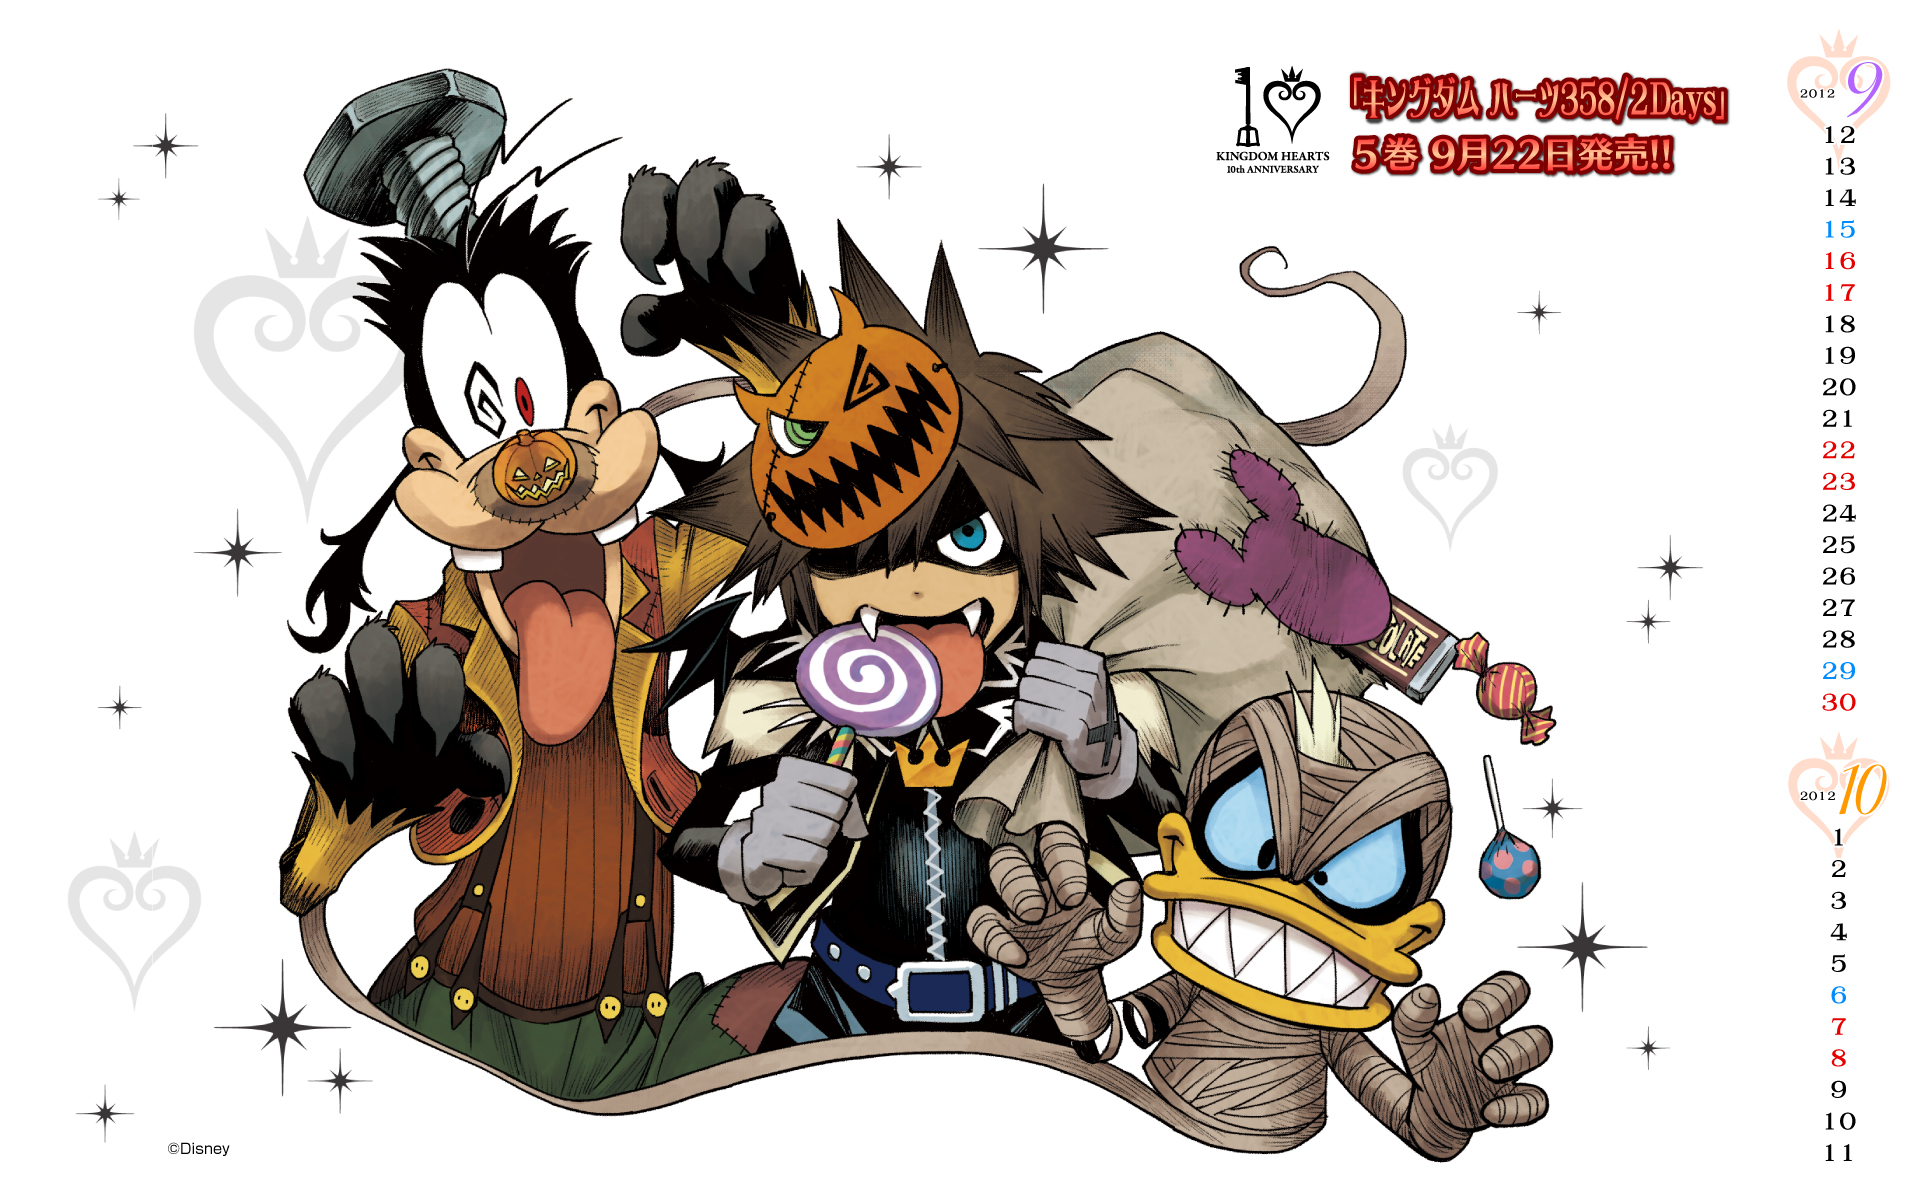 New KH 10th Anniversary Wallpaper by Shiro Amano! - News - Kingdom ...